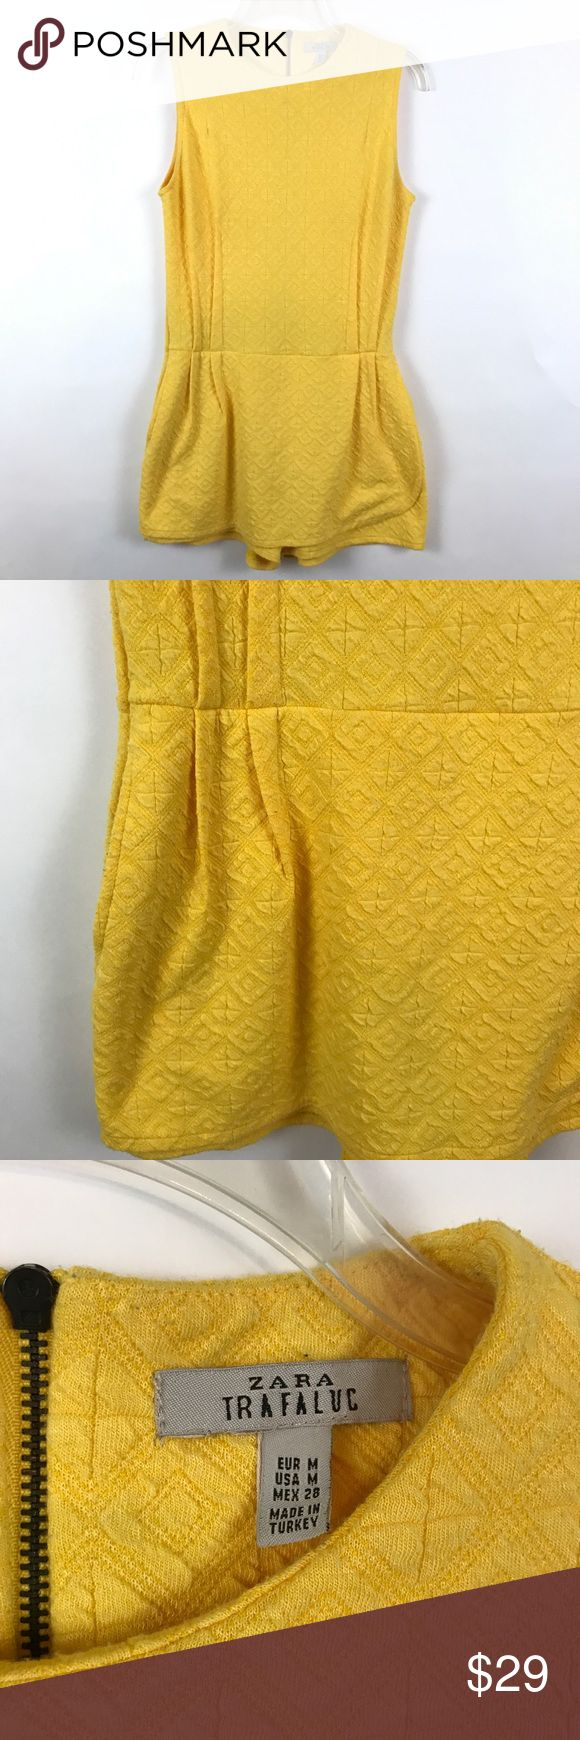 "ZARA | Yellow Textured Skirted Romper B18 Condition: Excellent pre owned condition besides some pilling from washing  Measurements (laying flat): 17"" pit to pit 32"" length 3"" inseam  Item location: bin 18 Zara Pants Jumpsuits & Rompers"